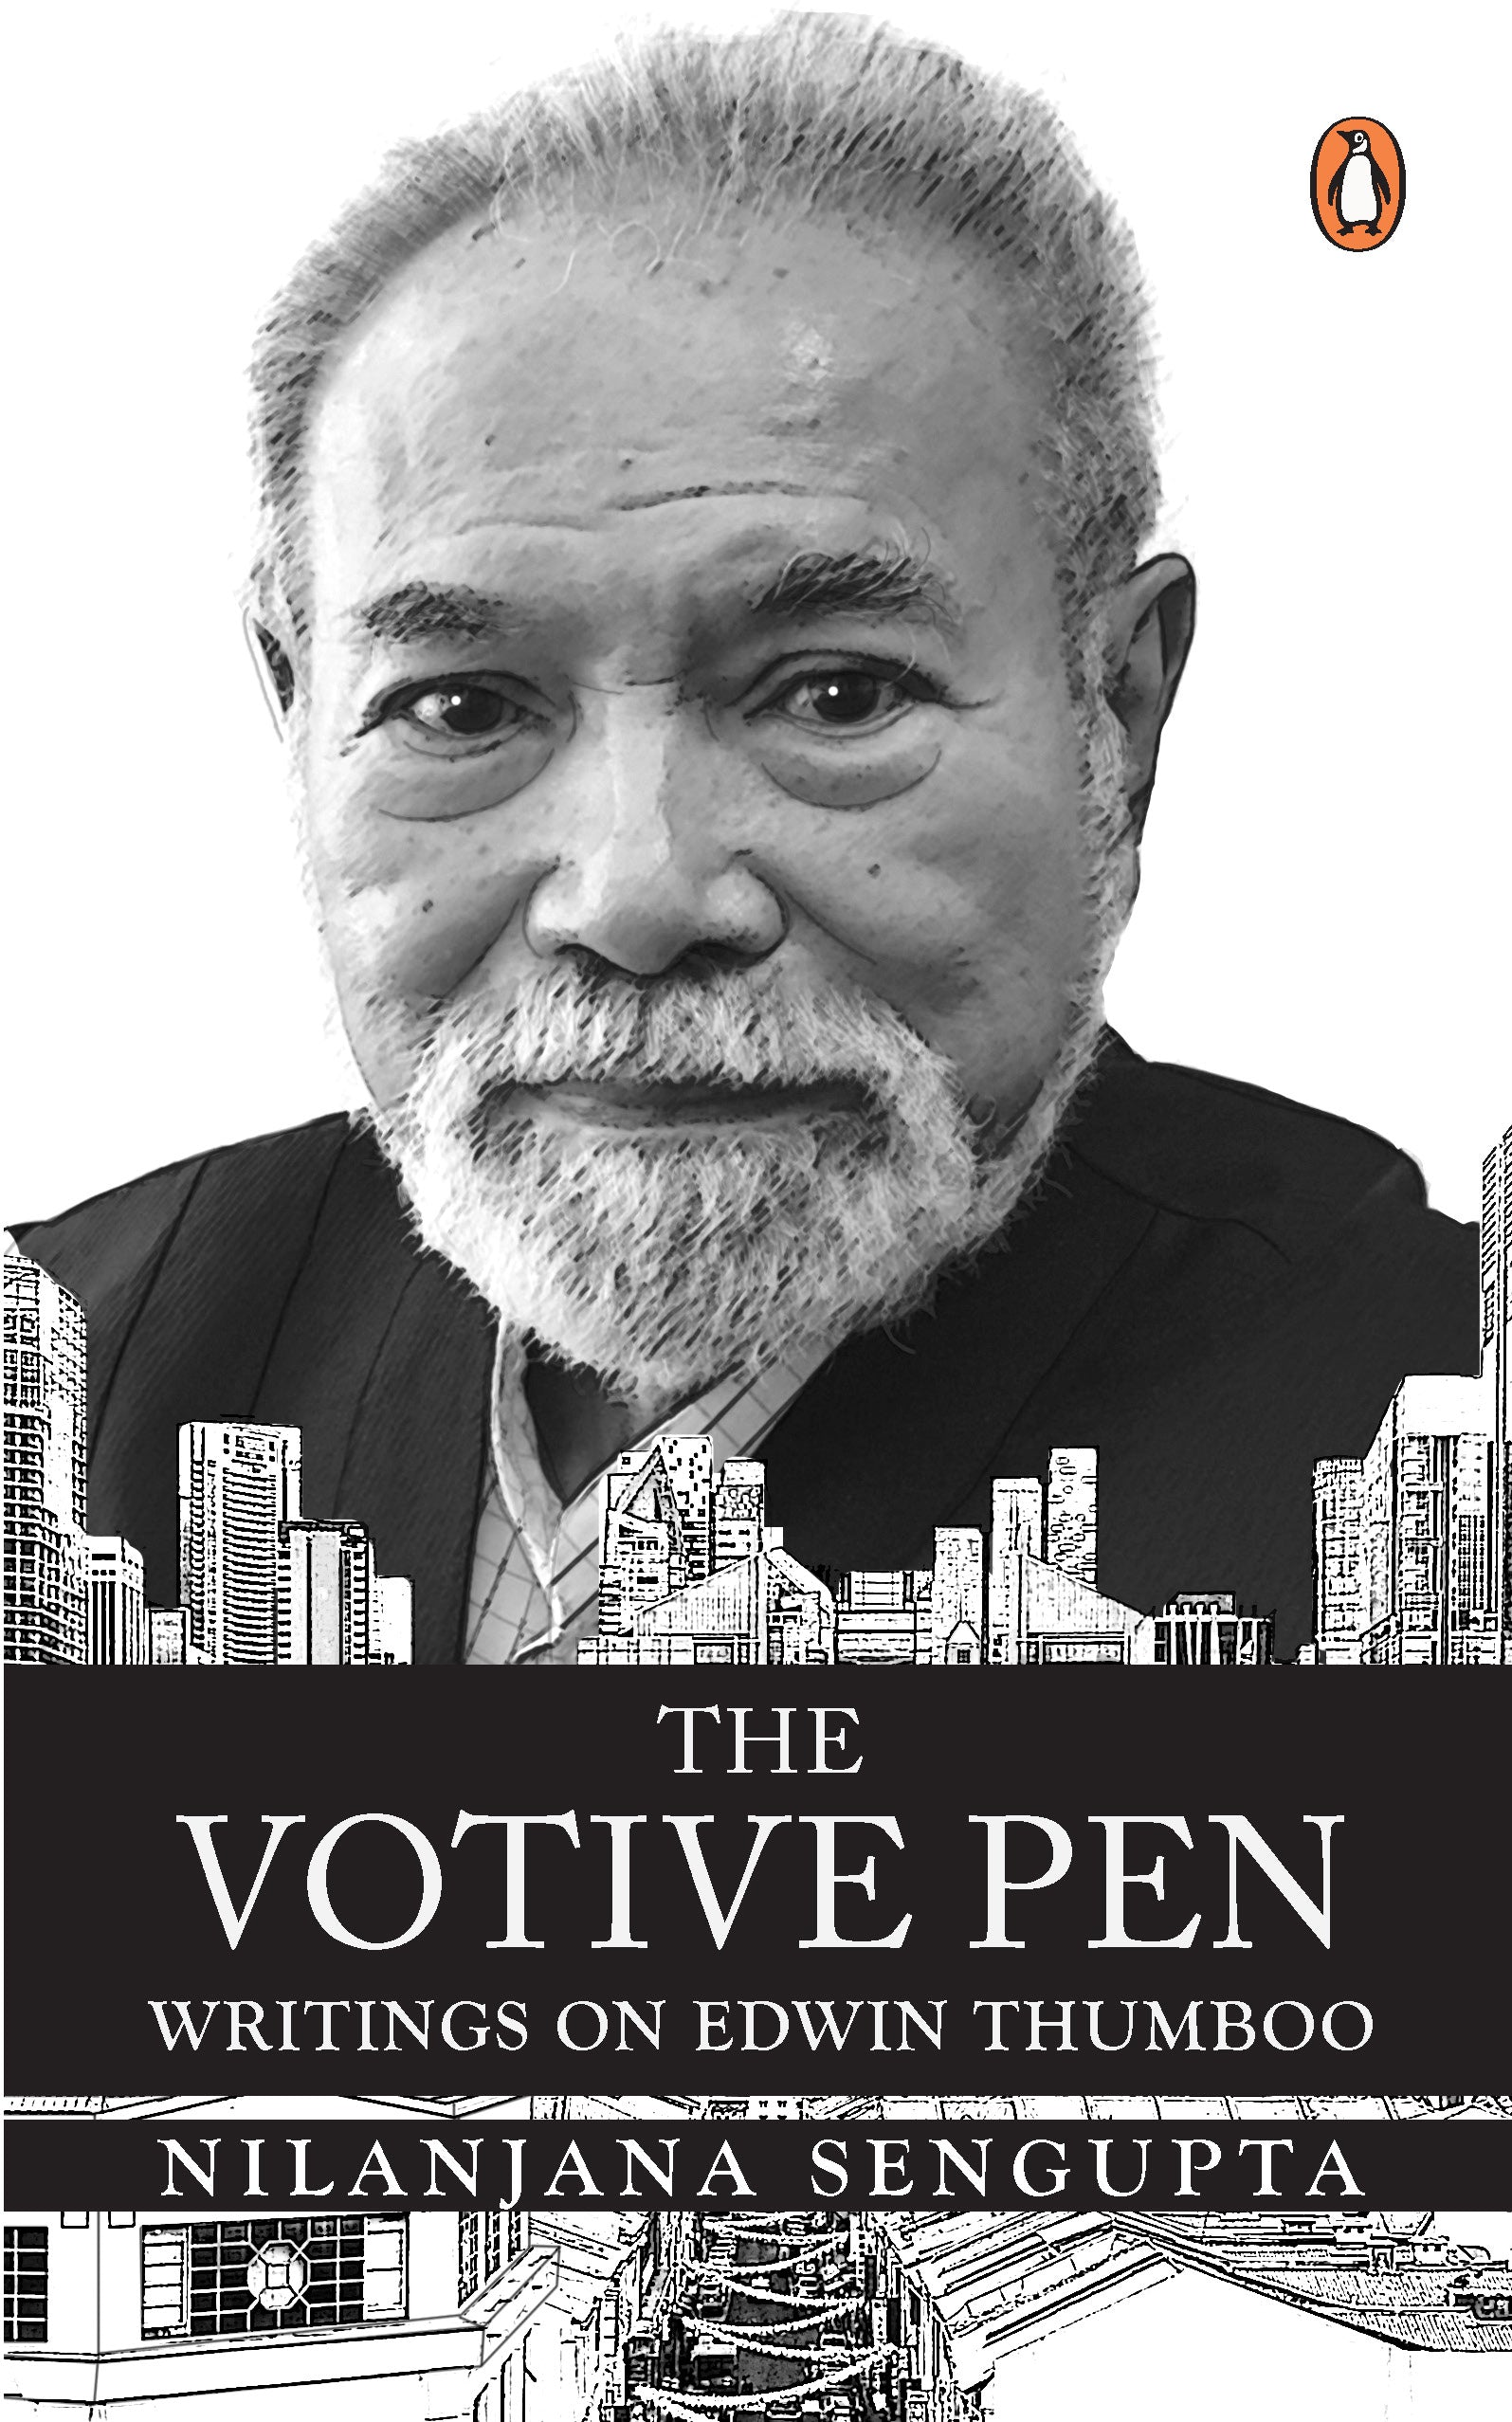 The Votive Pen: Writings on Edwin Thumboo